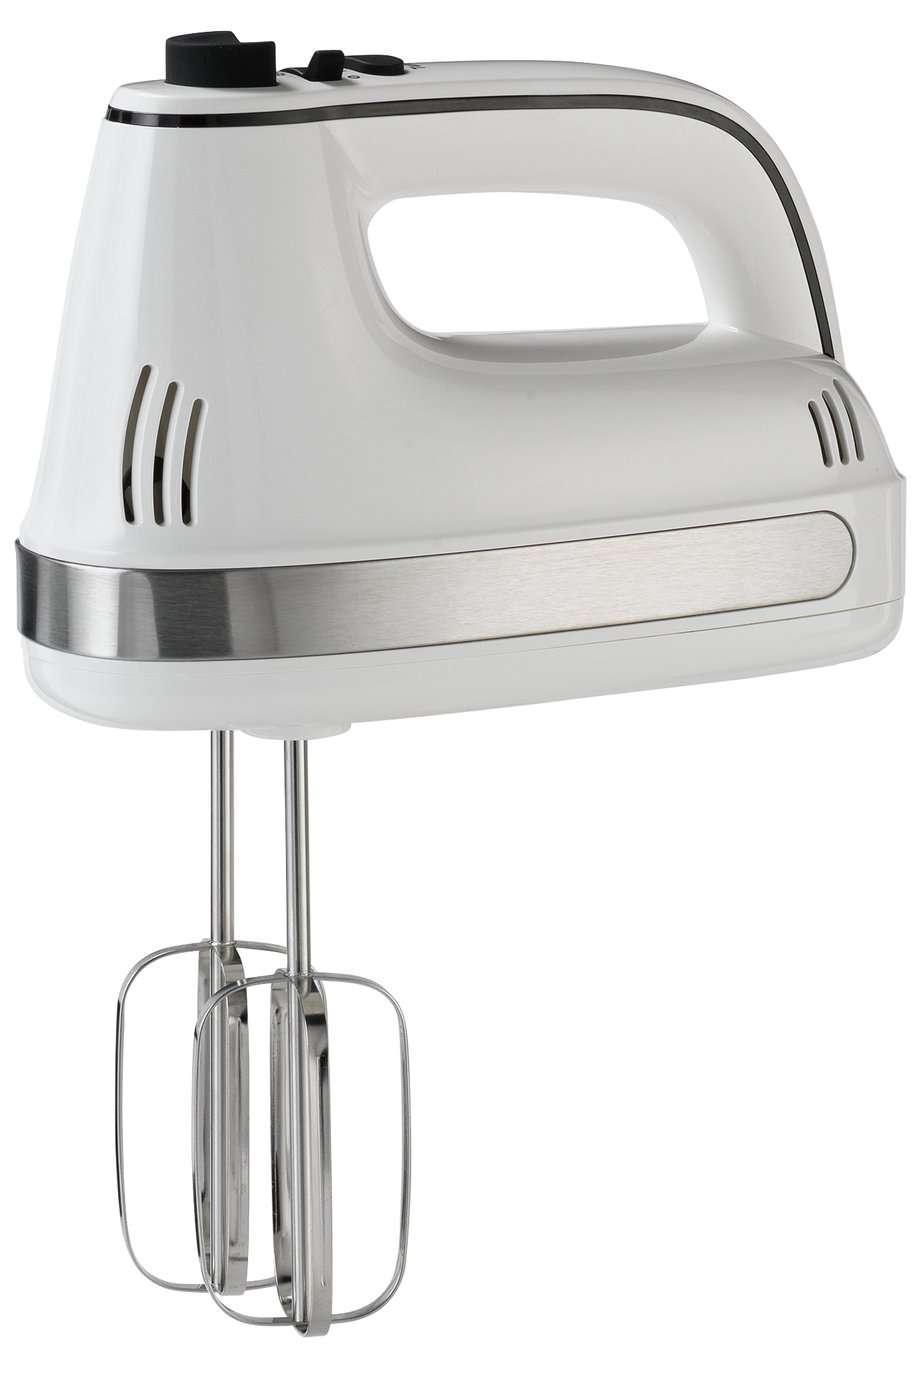 Cookworks Electric Hand Mixer - White